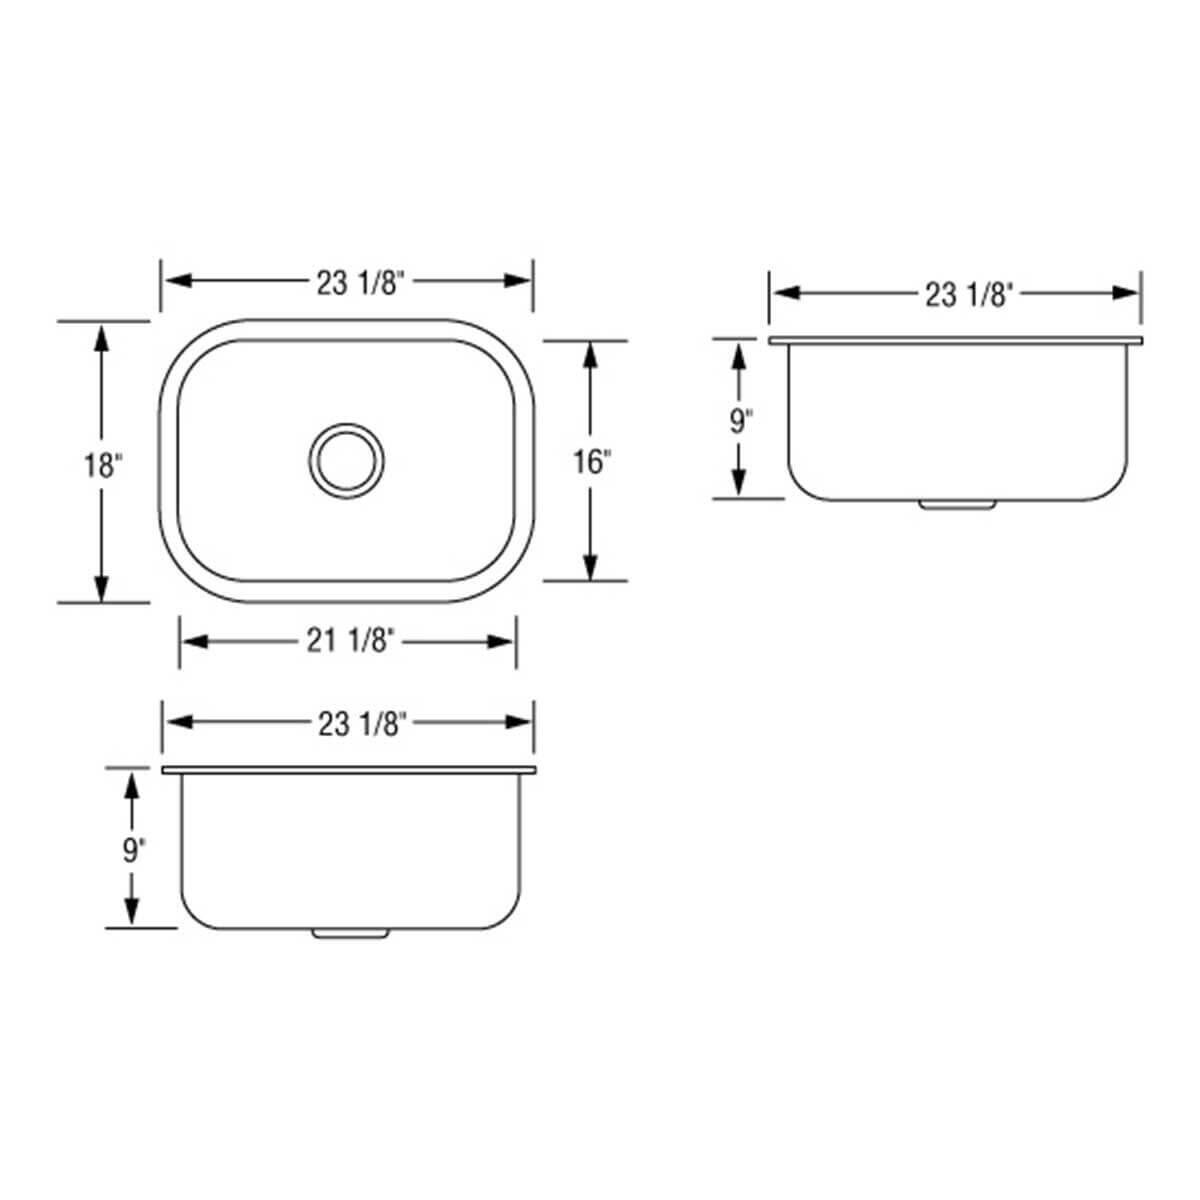 Artisan AR2318-D9 Single Bowl Sink Dimensions